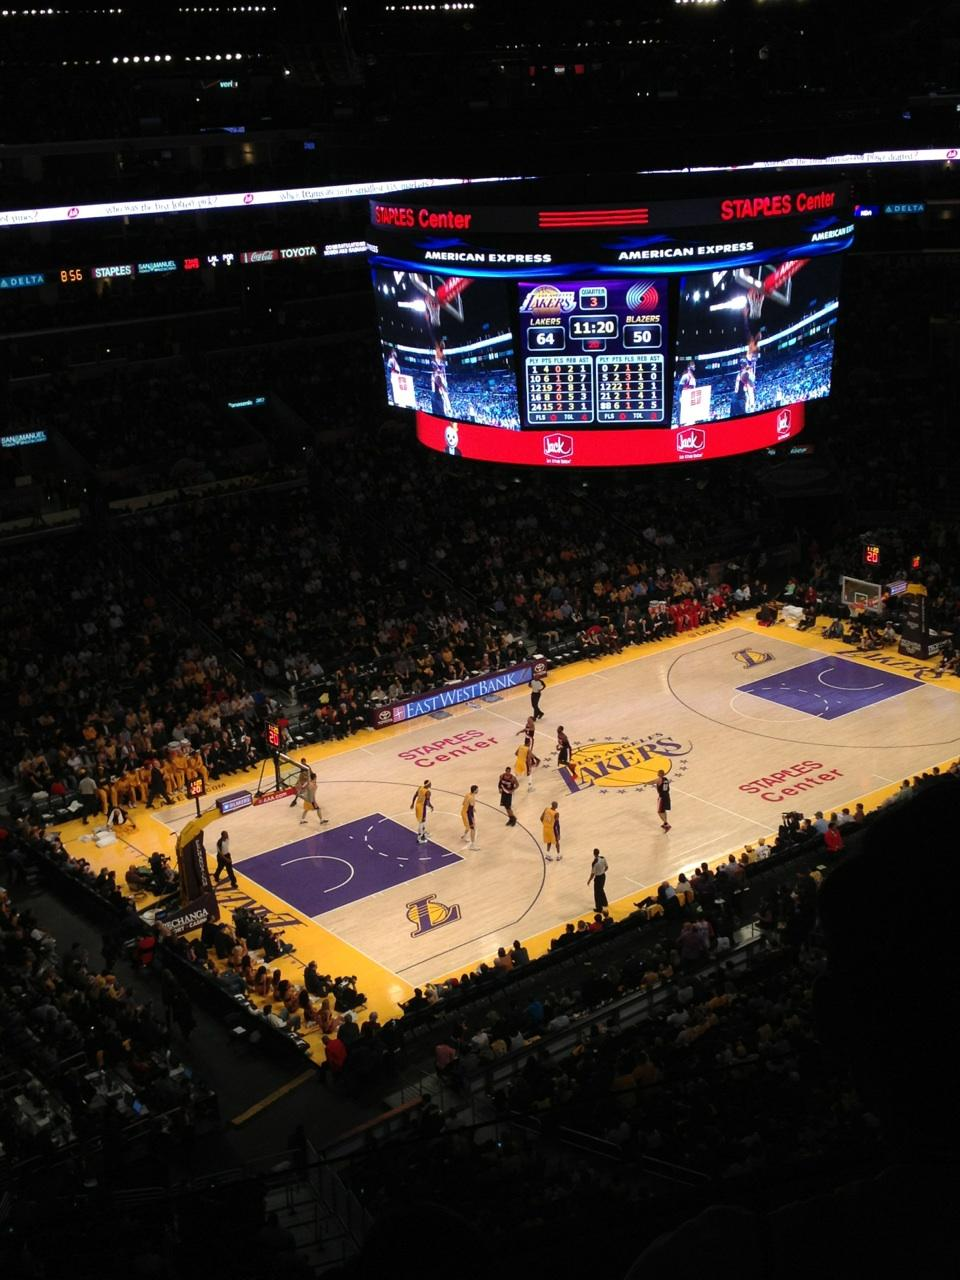 Los Seating Angeles Clippers